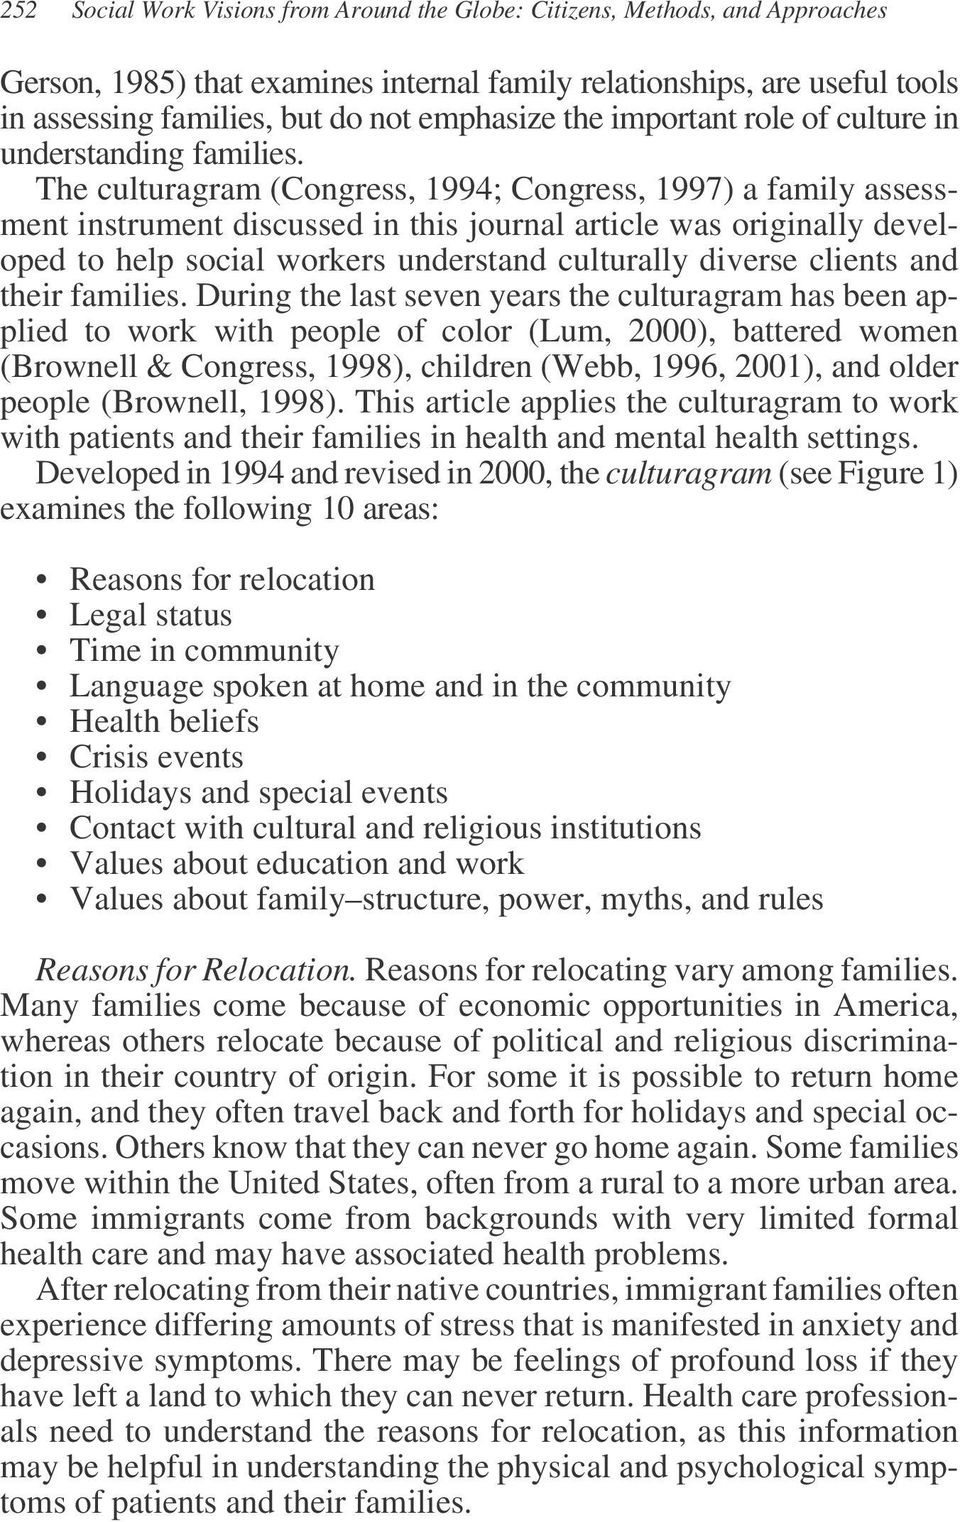 The culturagram (Congress, 1994; Congress, 1997) a family assessment instrument discussed in this journal article was originally developed to help social workers understand culturally diverse clients